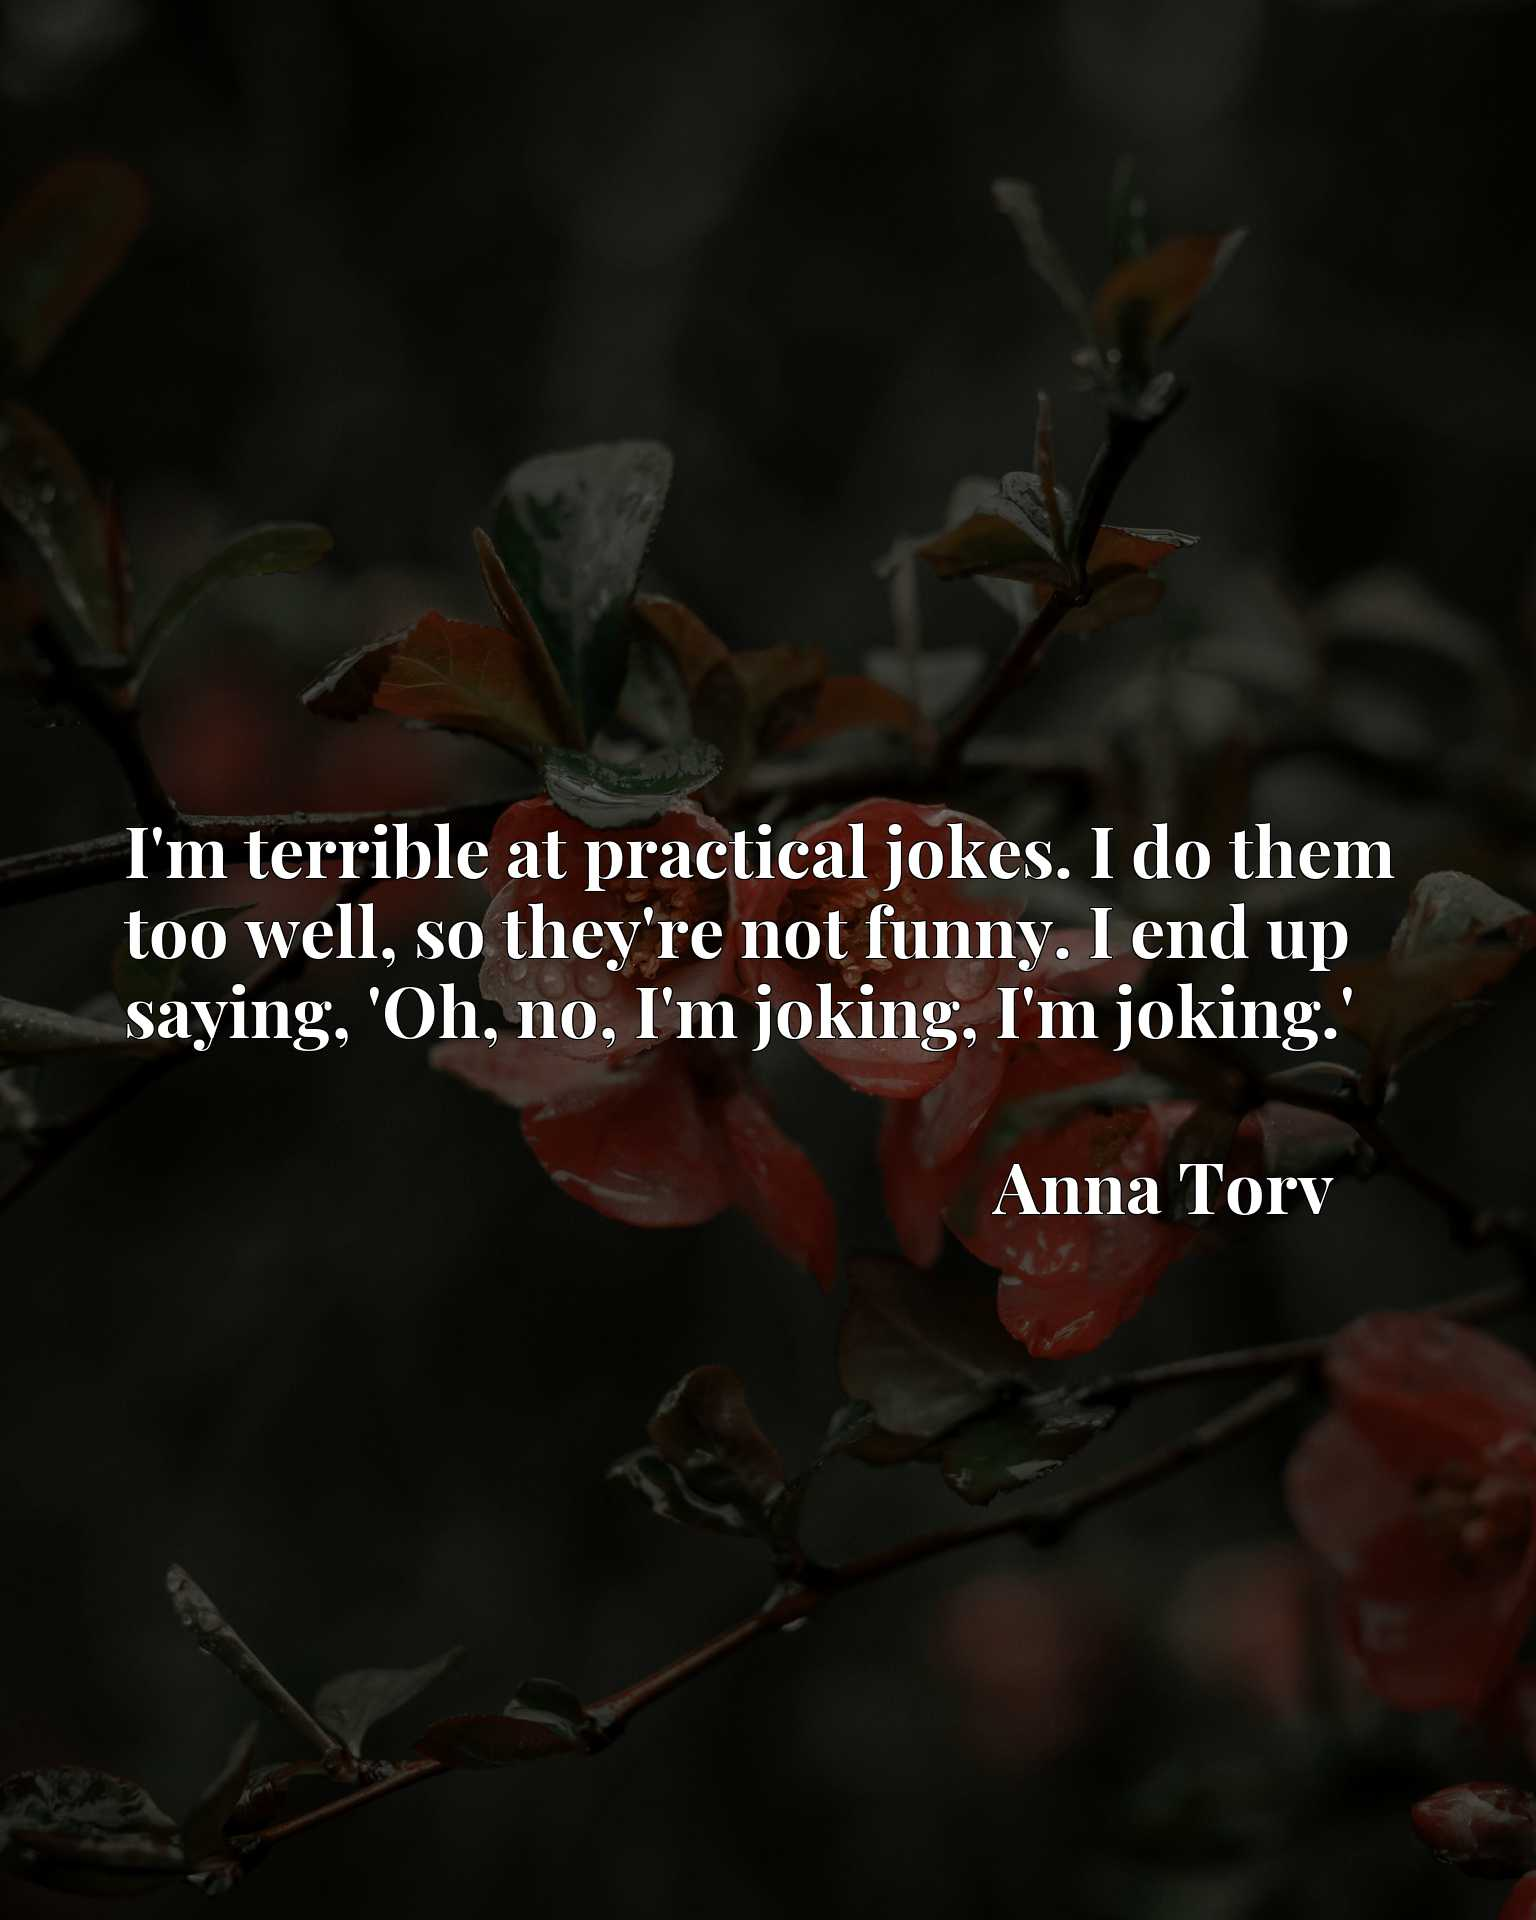 I'm terrible at practical jokes. I do them too well, so they're not funny. I end up saying, 'Oh, no, I'm joking, I'm joking.'